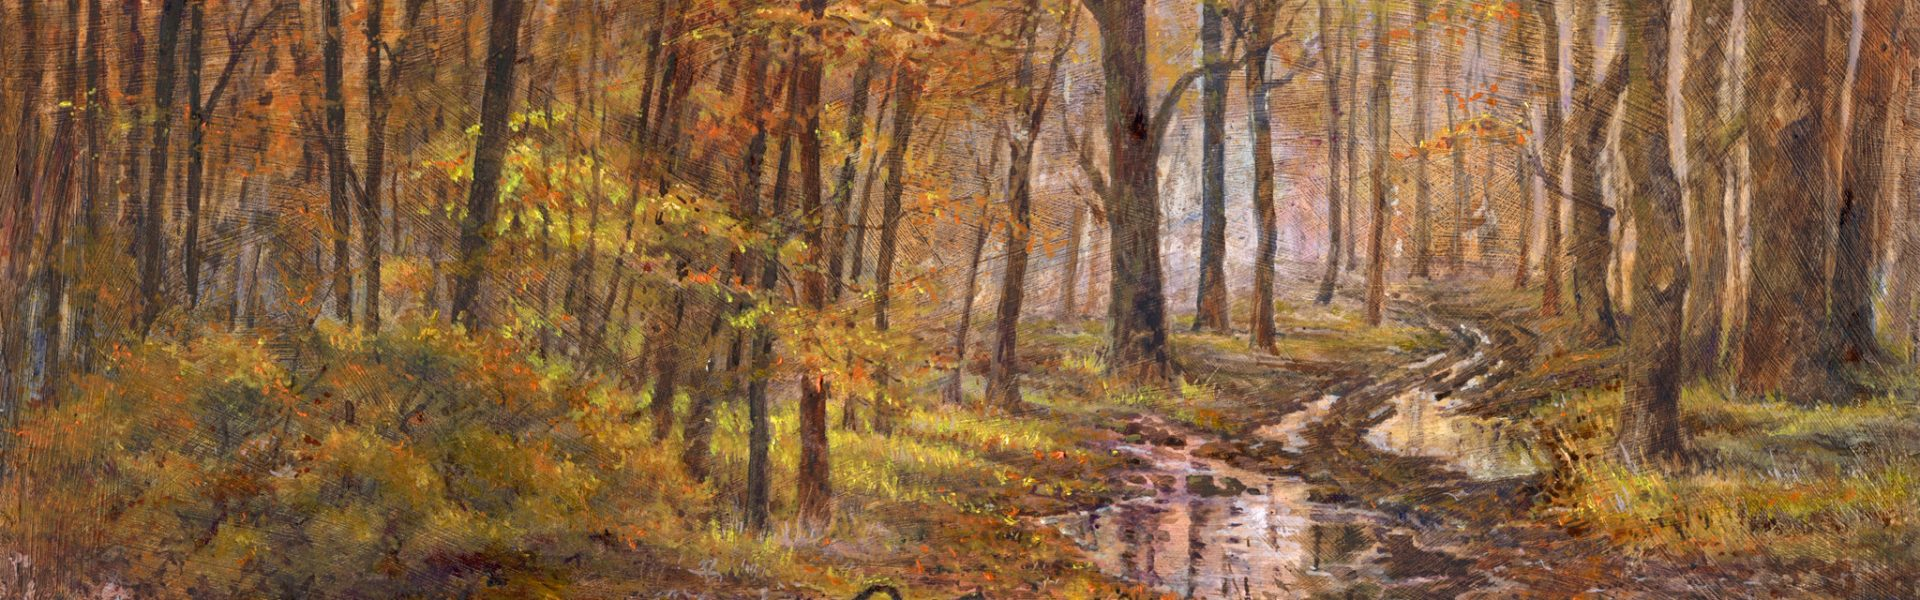 Woodland Puddles 50x20cm £180 framed